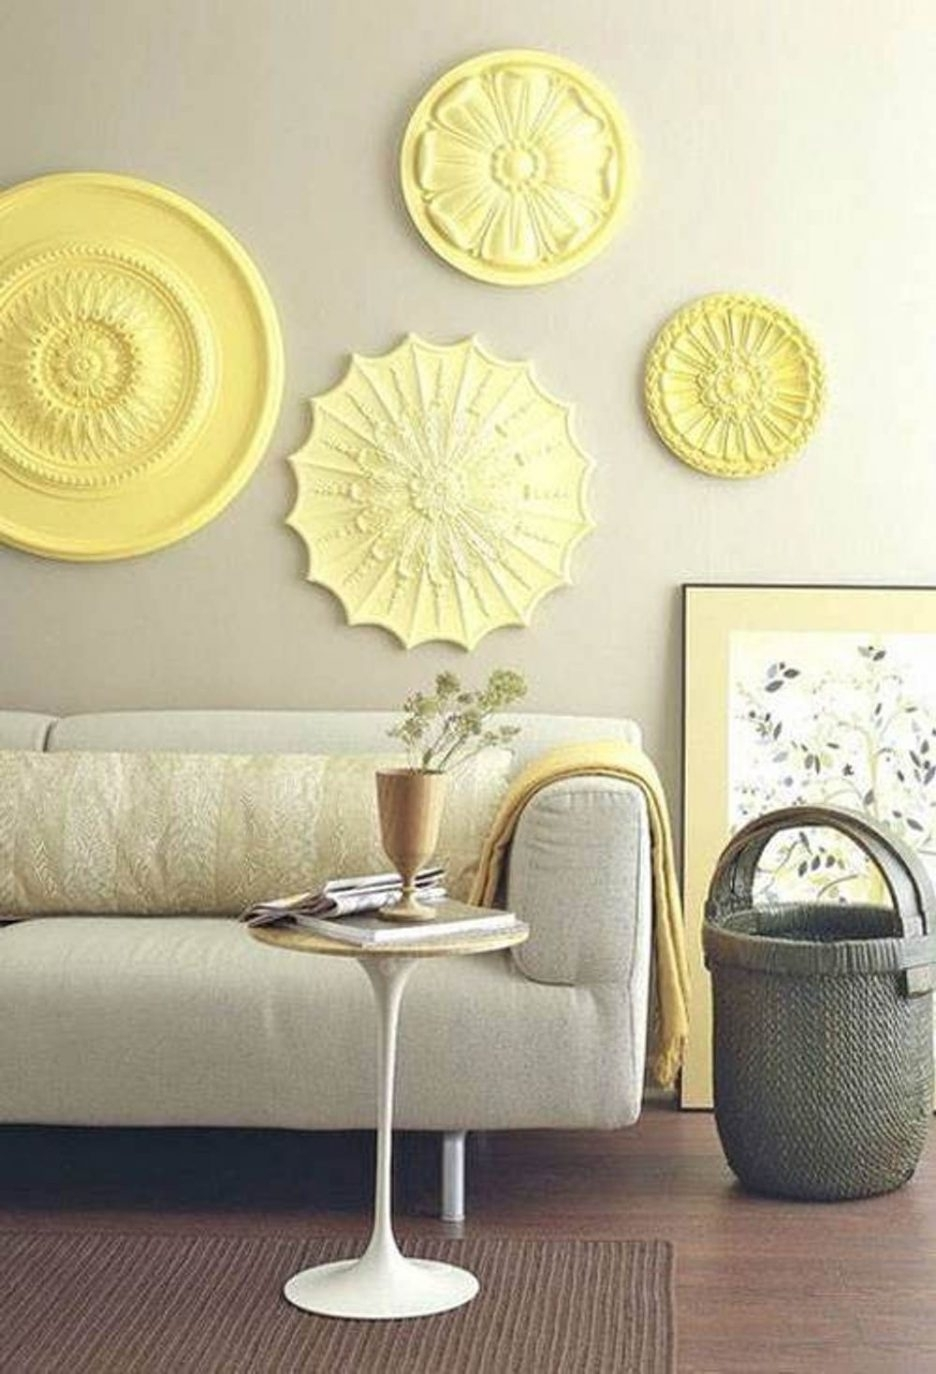 View Gallery of Round Fabric Wall Art (Showing 2 of 15 Photos)